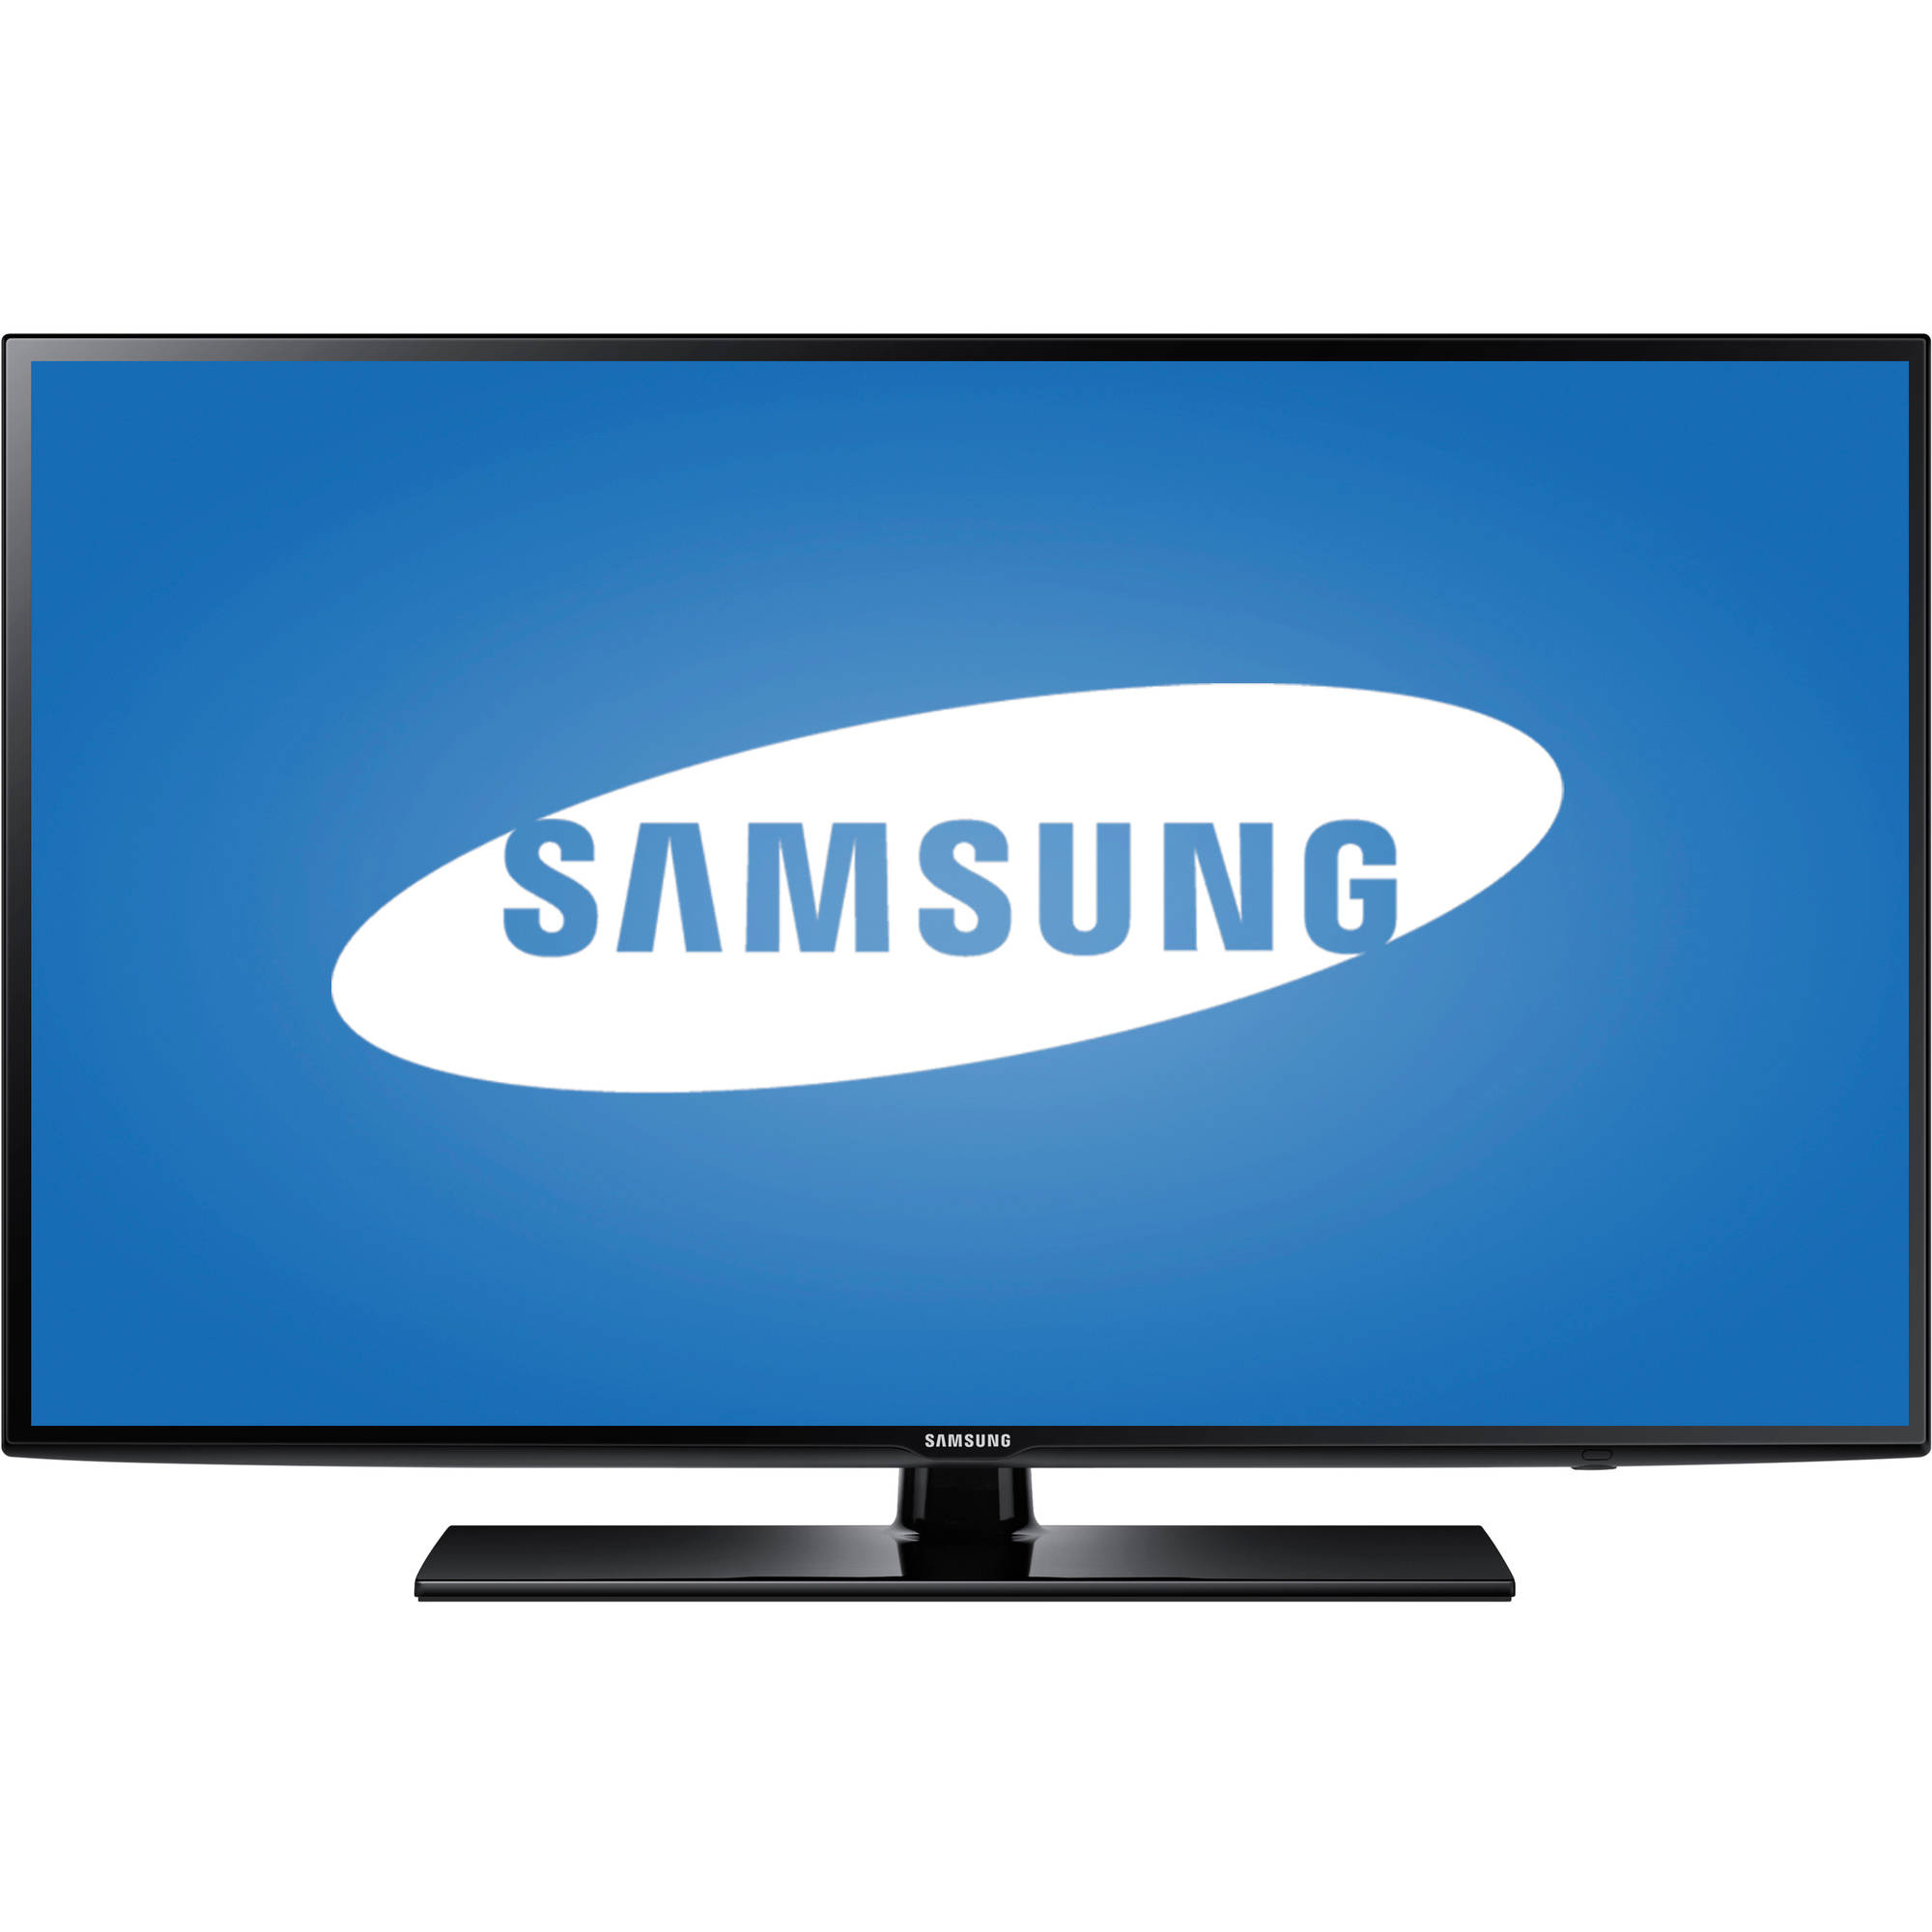 "SAMSUNG 60"" 6200 Series - Full HD Smart LED TV - 1080p, 120MR (Model#: UN60J6200)"